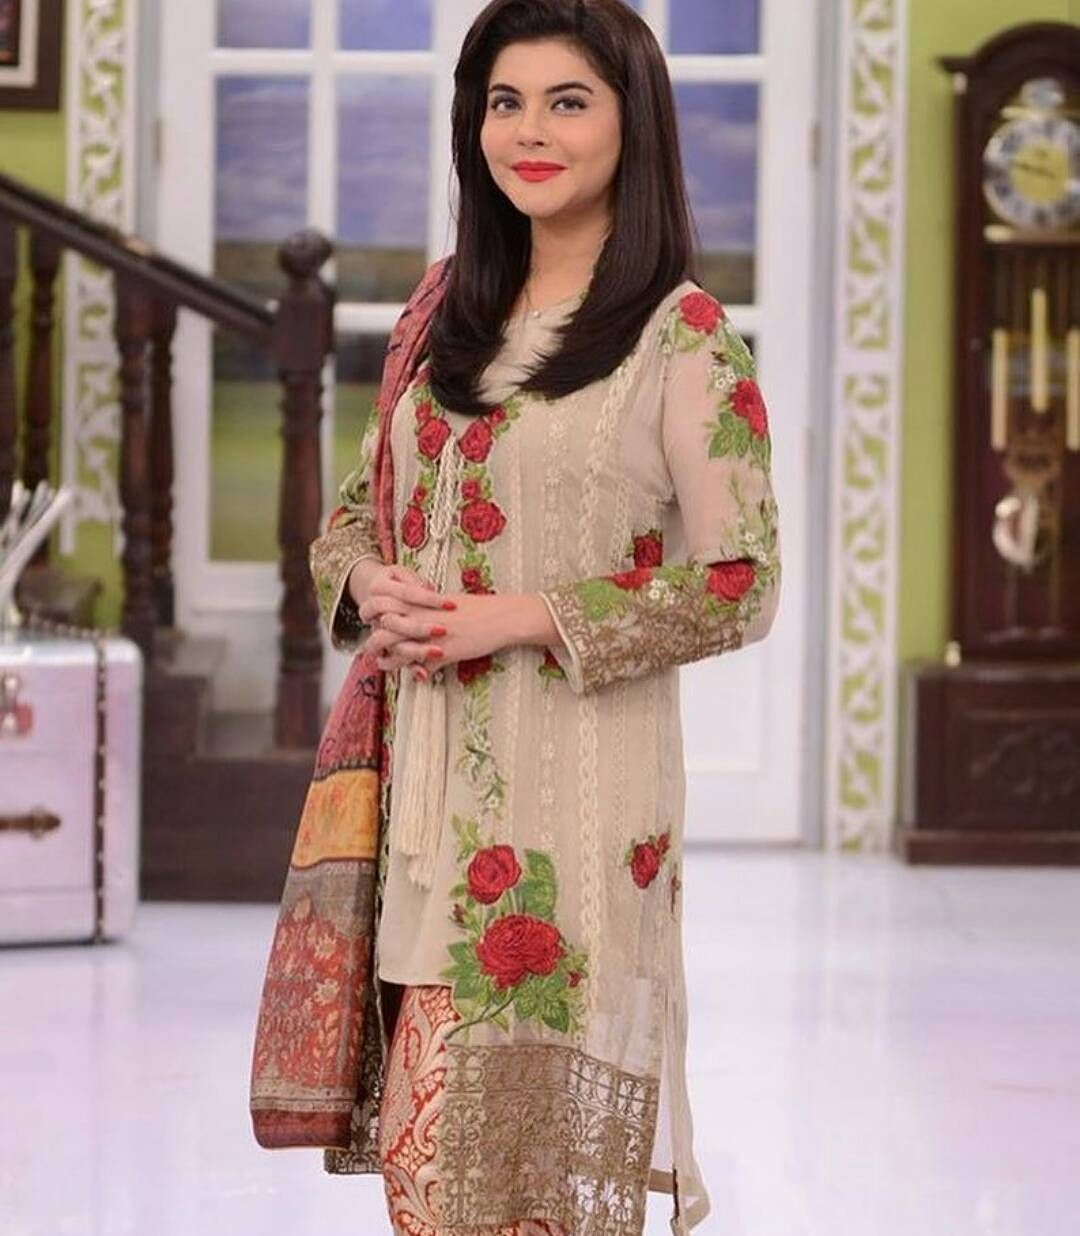 c5aeaa7259 The gorgeous Nida Yasir was spotted wearing Mahiymaan formal embroidered  collection by alzohaib today on her